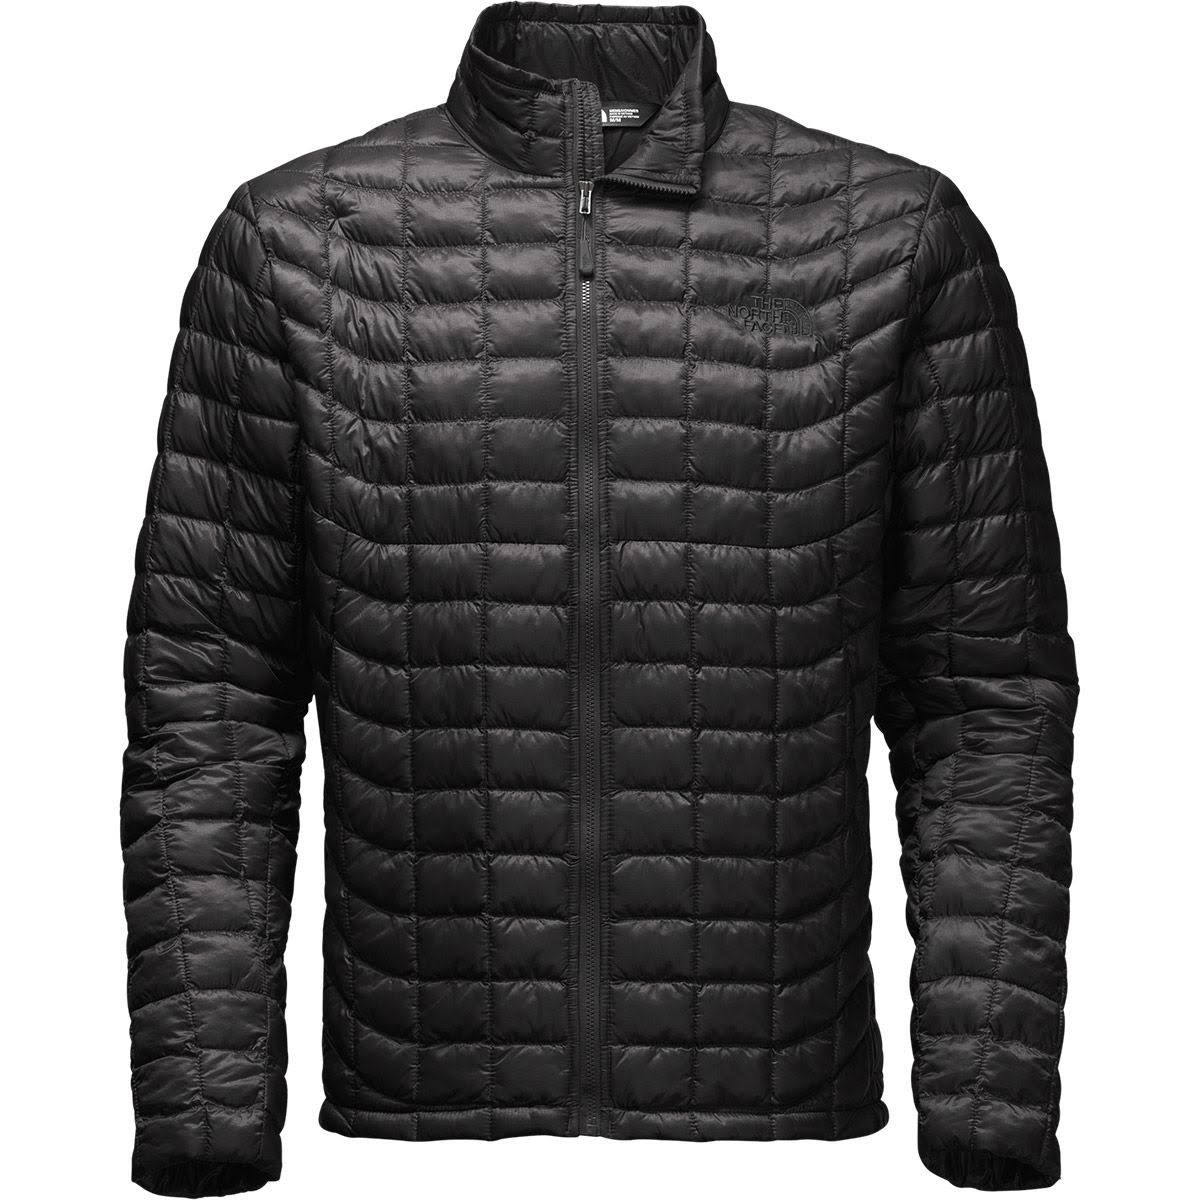 Gris Face Asfalto Zip North Thermoball Jacket Hombre Full The zw7SqxF